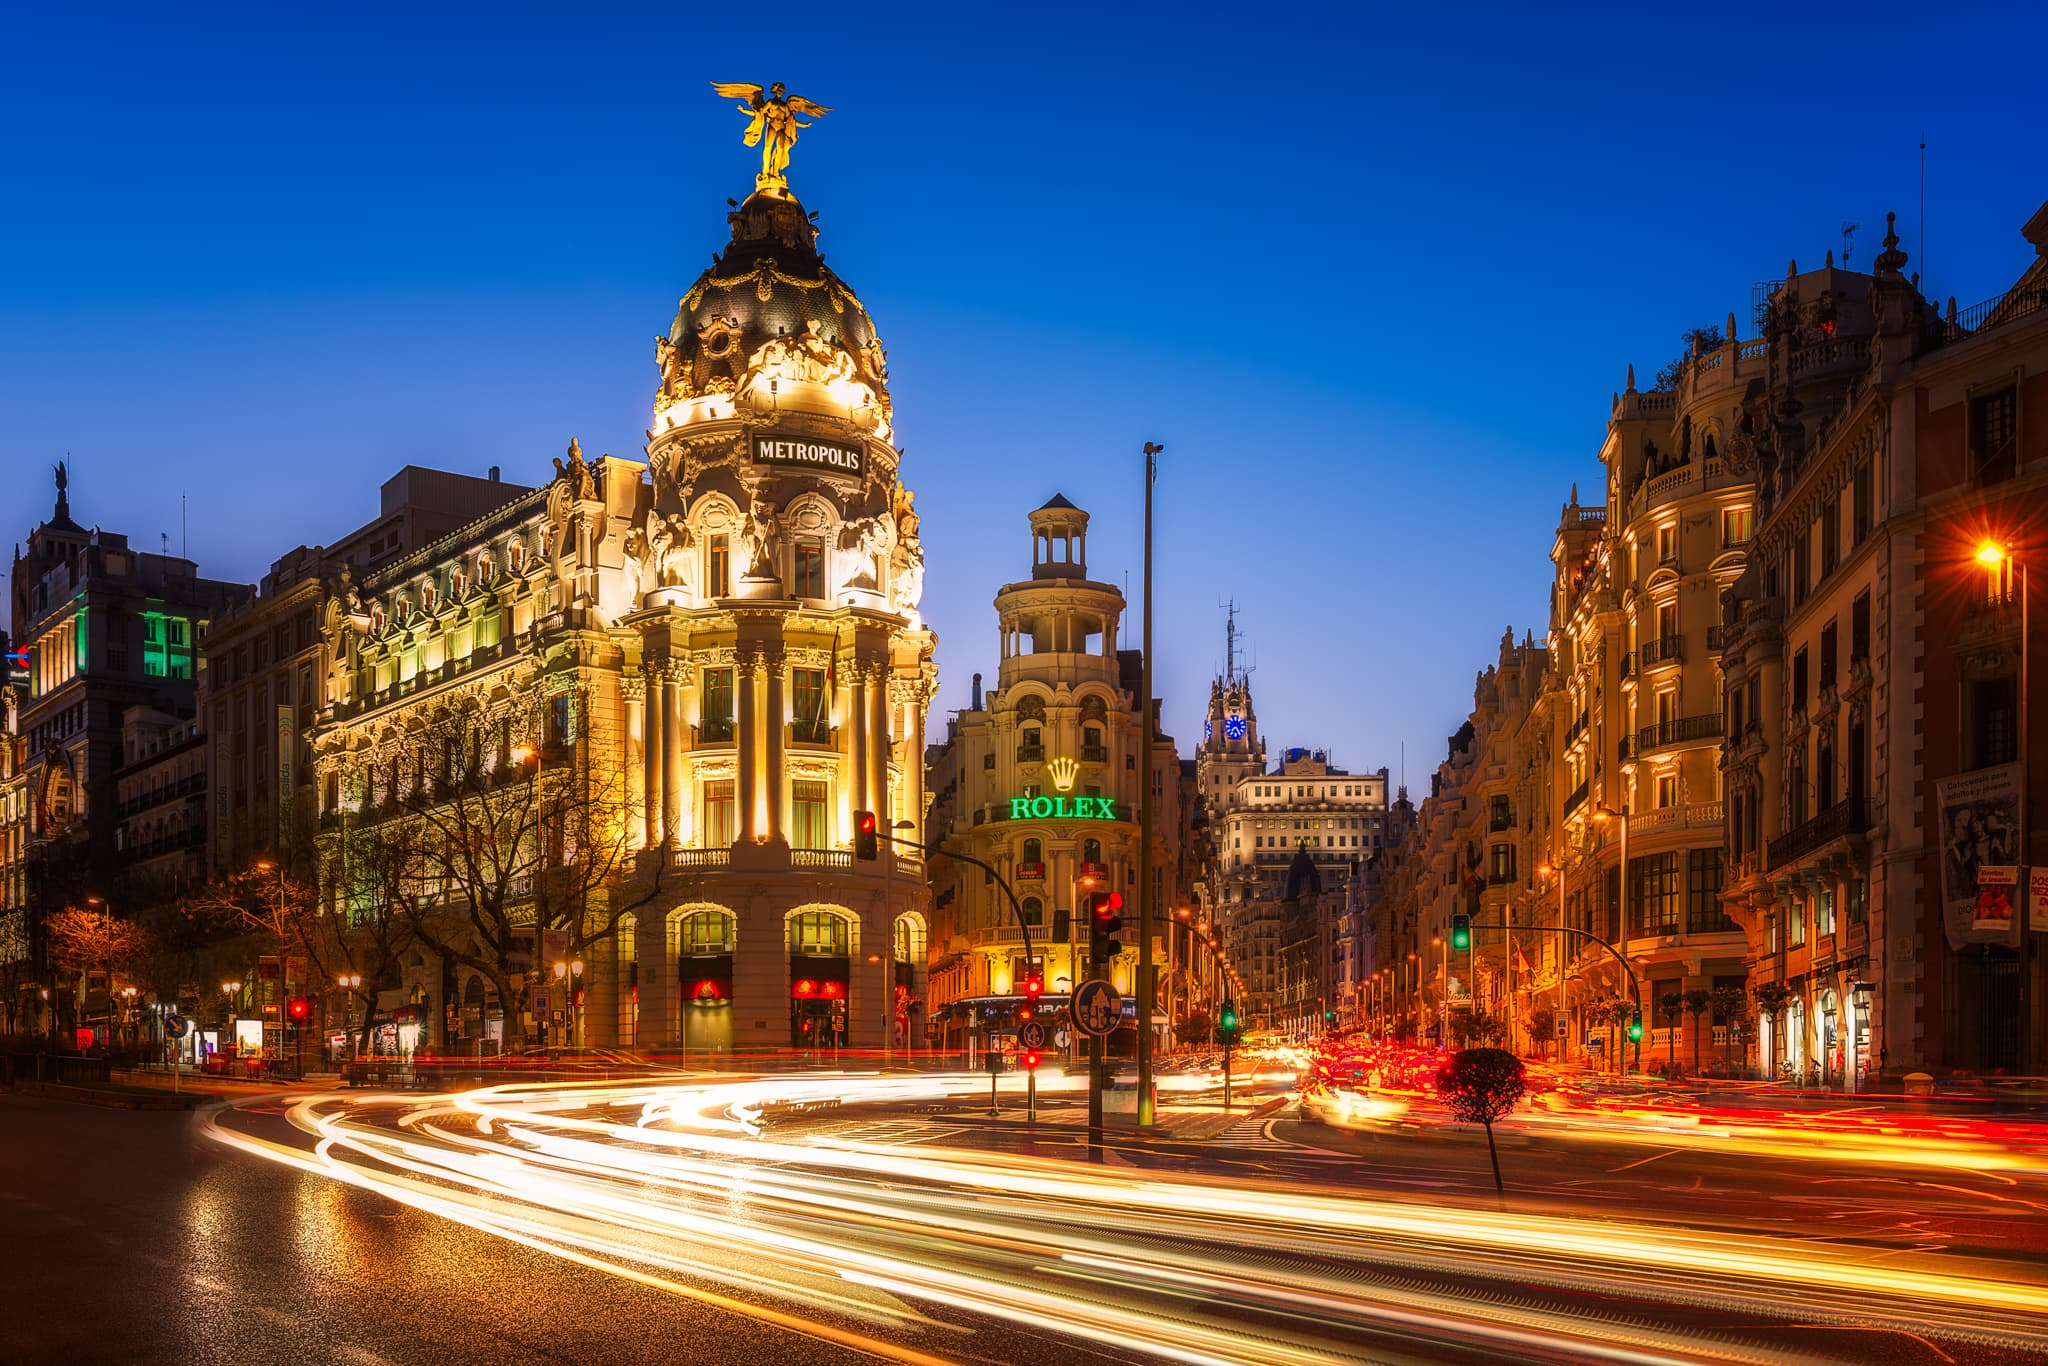 Gran Via and The Metropolis Building in the heart of Madrid – impressions from the night life in the Capital of Spain.